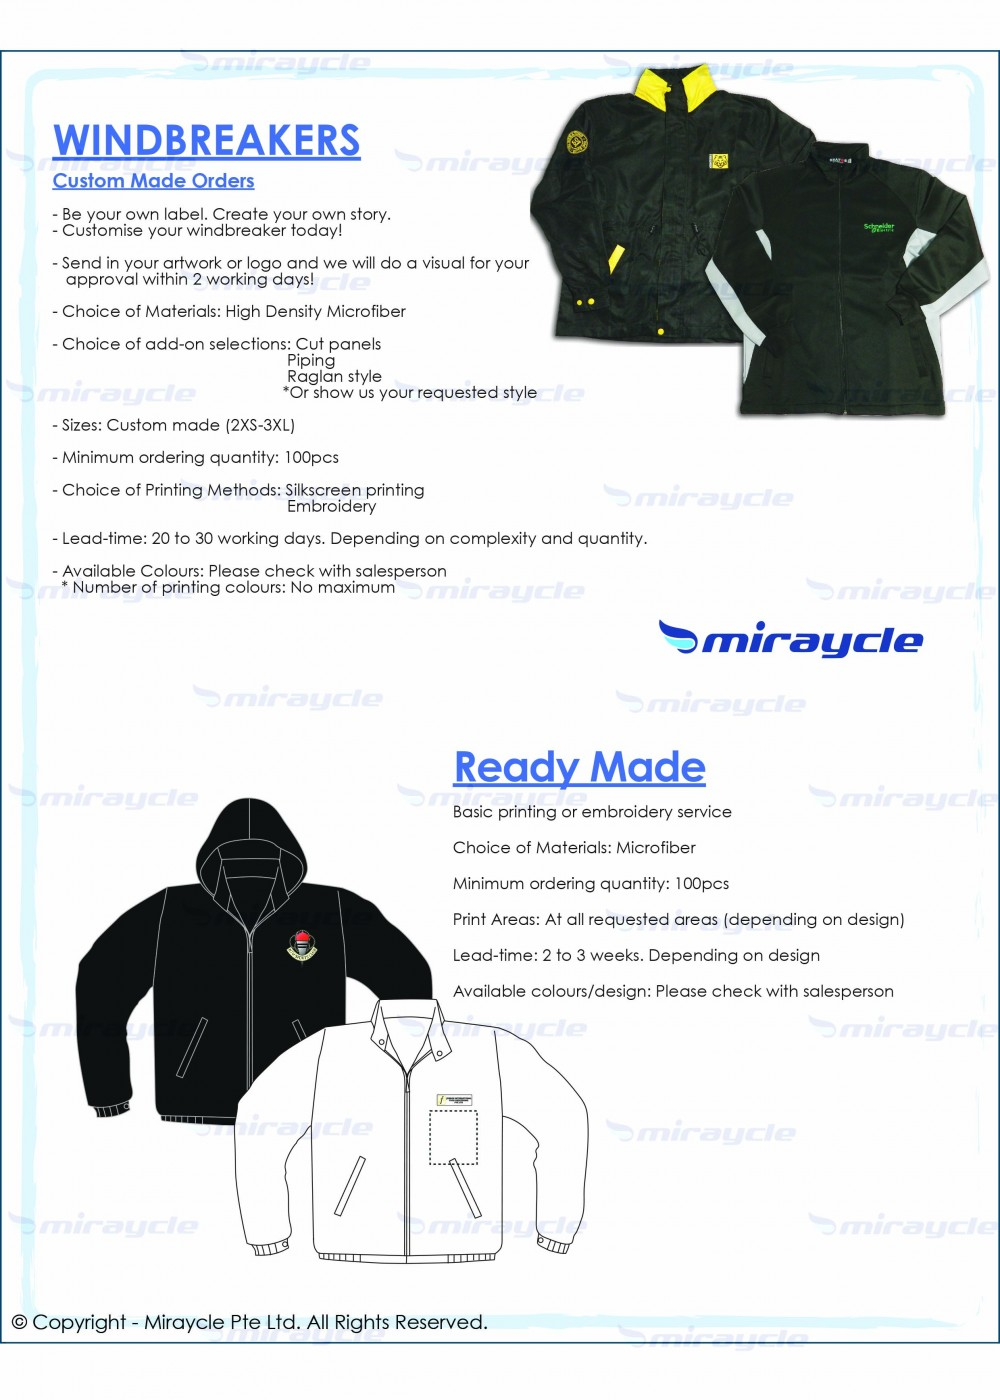 Windbreakers Brochure